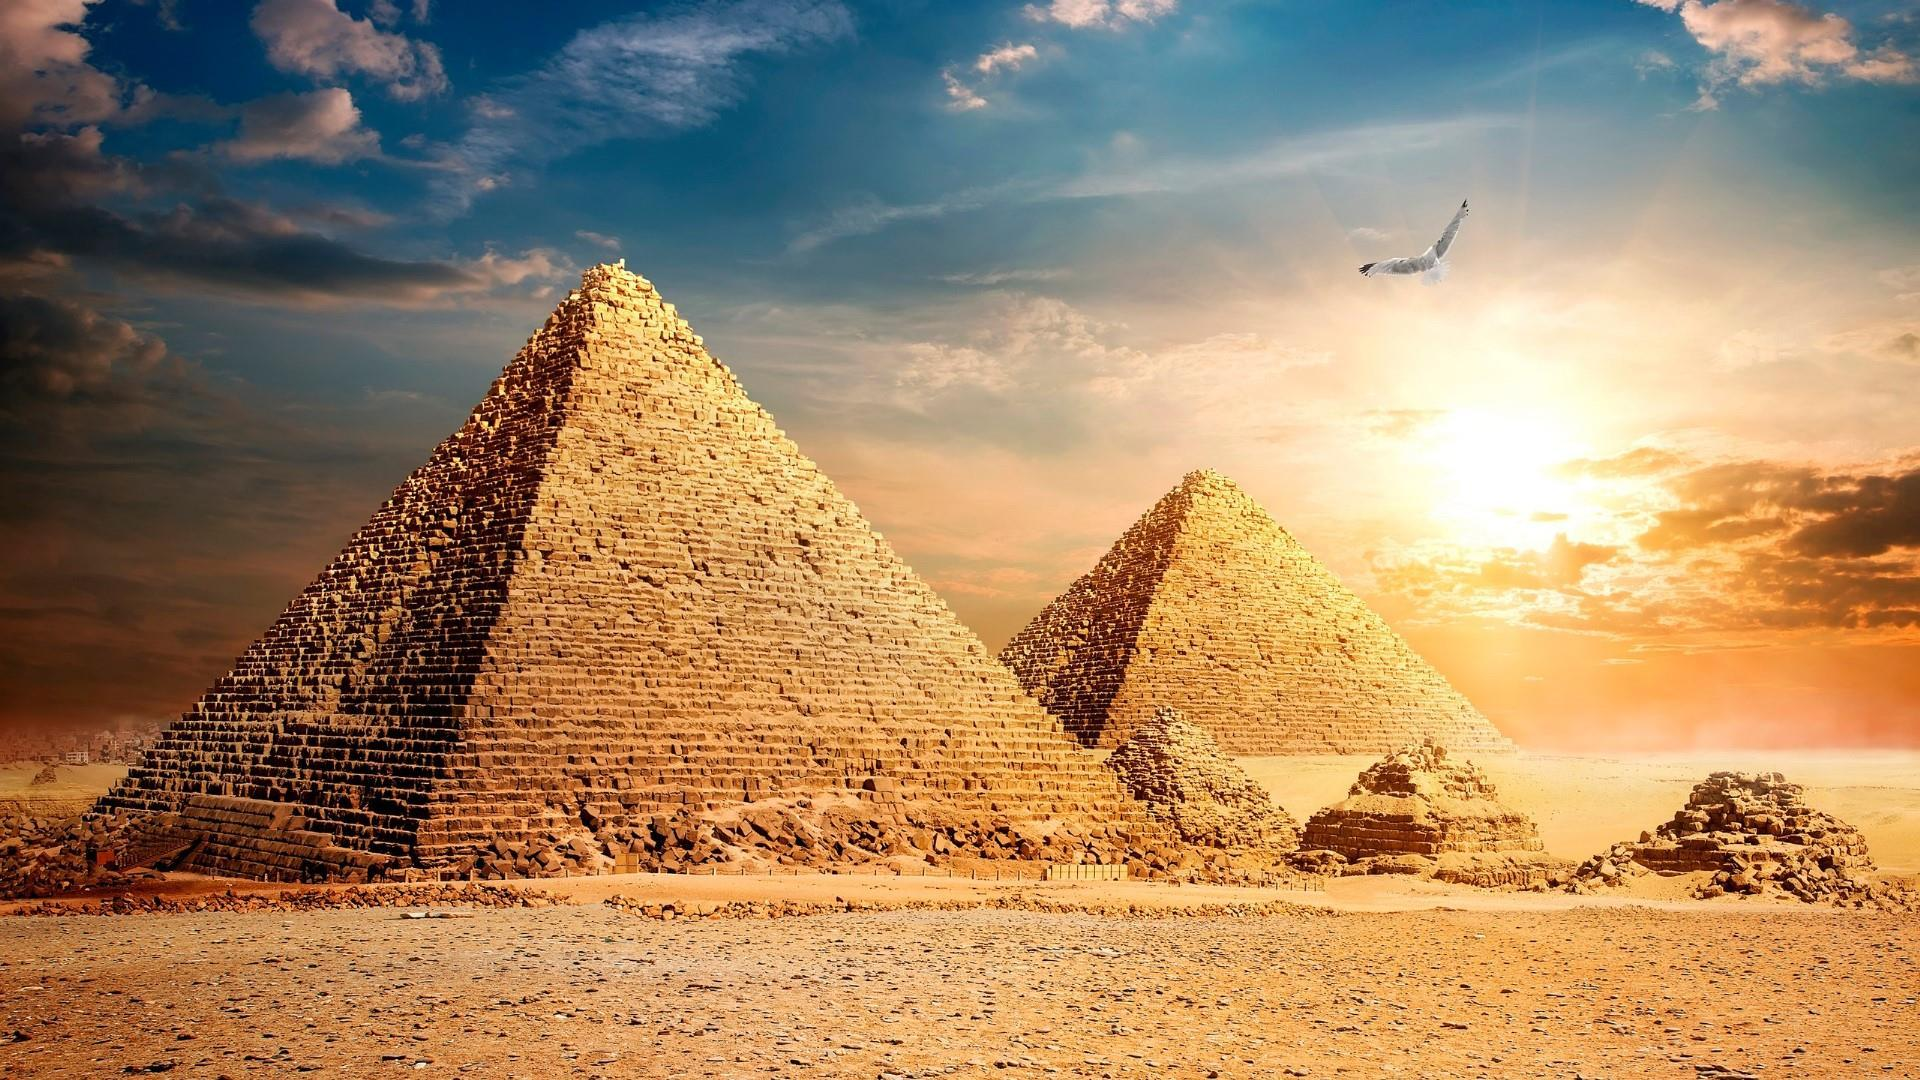 Egypt Pyramids Hd Wallpapers Wallpapers Pyramid Wallpaper Cave